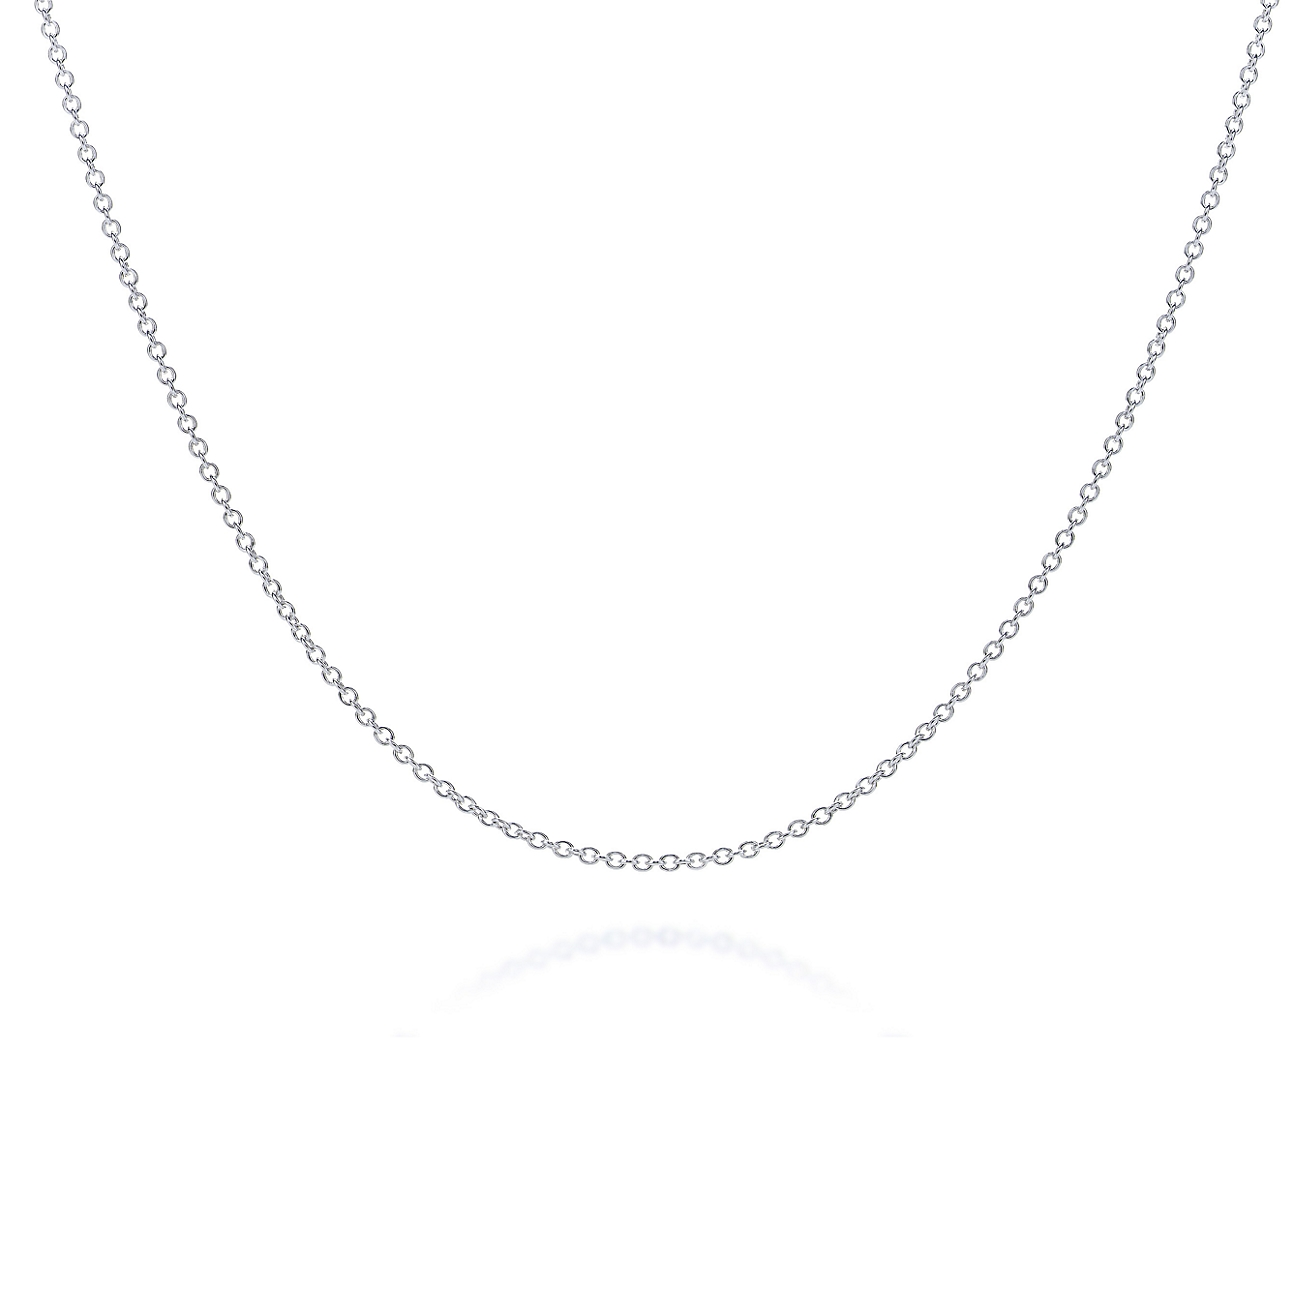 necklaces link iobi silver products or in oval chain feshionn belcher sterling necklace fine inches